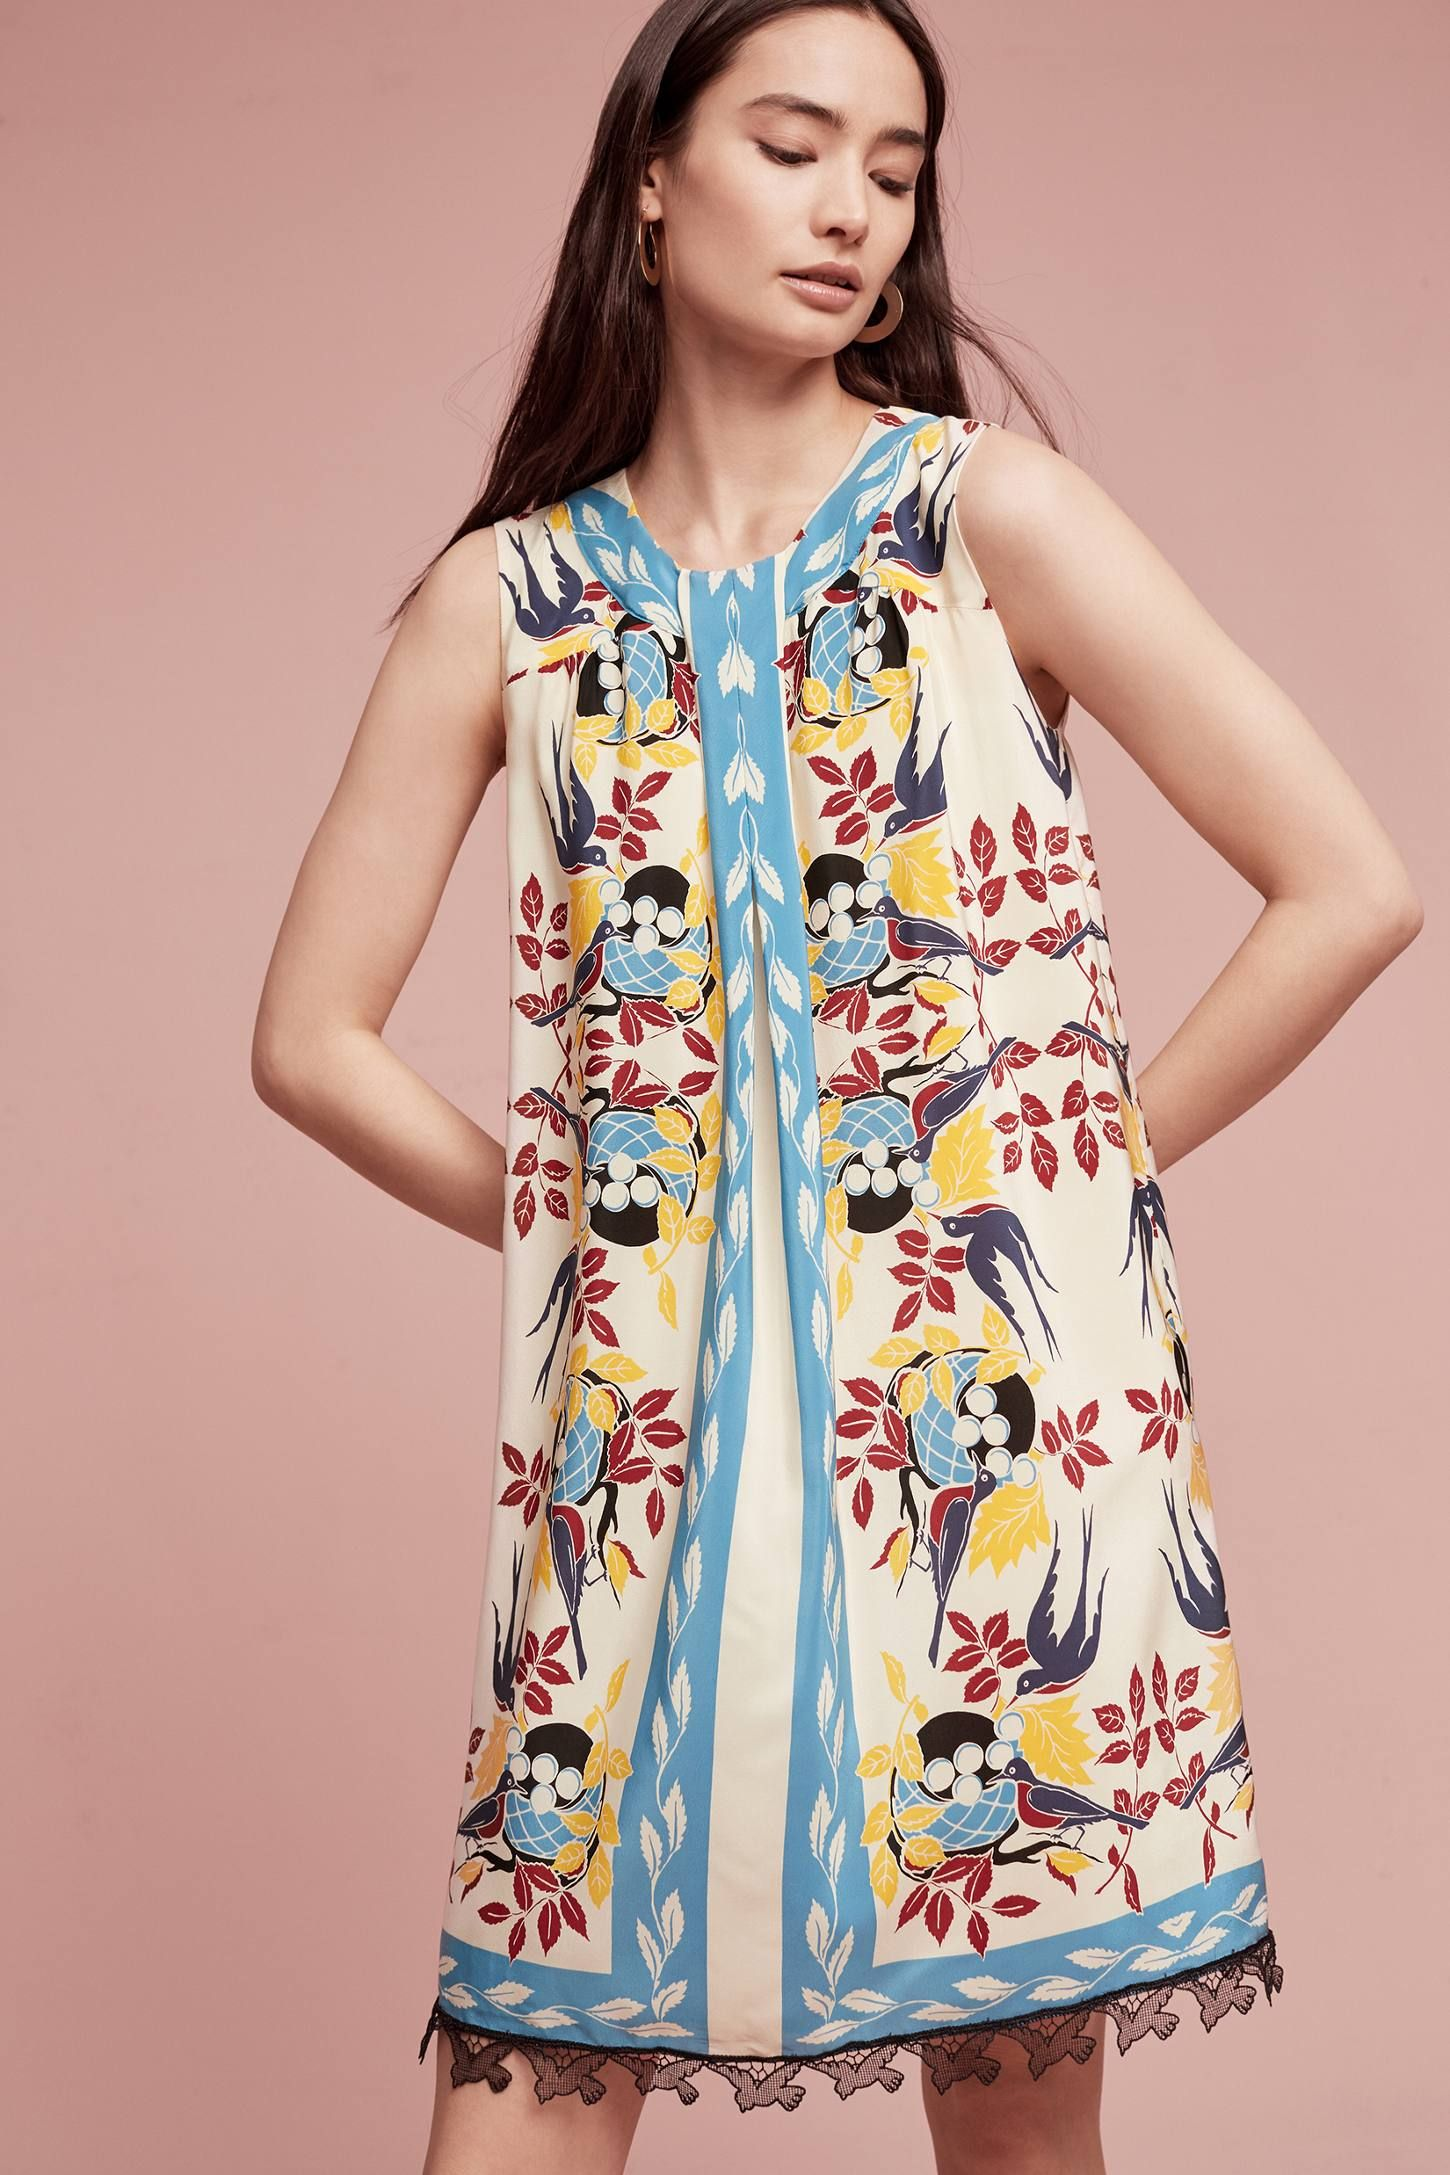 87624857c2f7 Shop the Bird's Nest Silk Tunic Dress and more Anthropologie at  Anthropologie today. Read customer reviews, discover product details and  more.